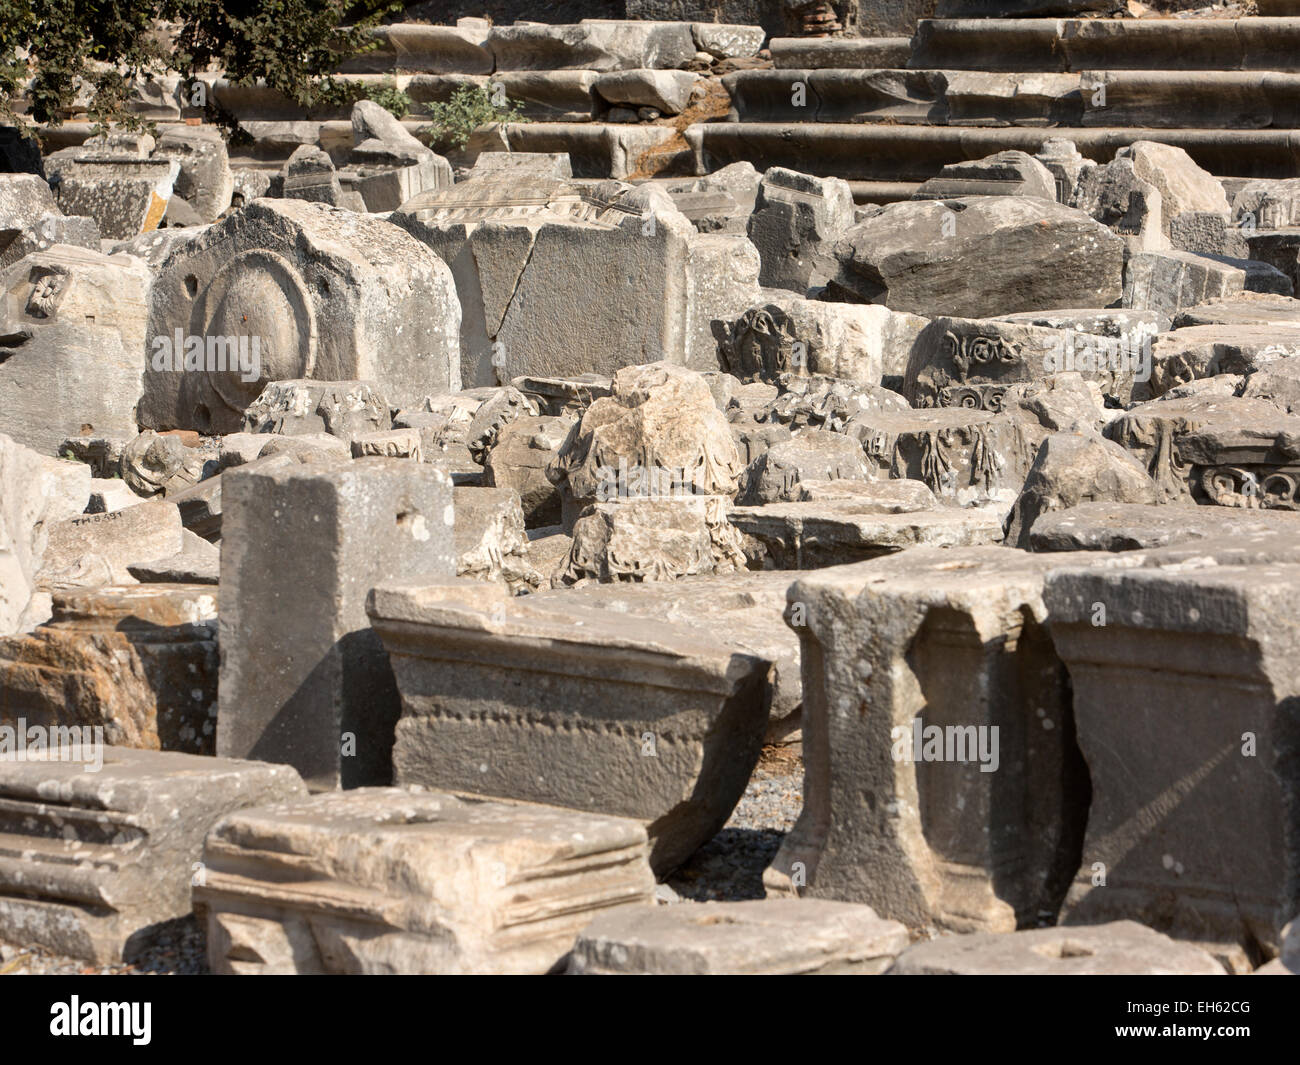 An Archaeological Site With Stones Rubble Outside Stock ...   Ancient Rubble Stone